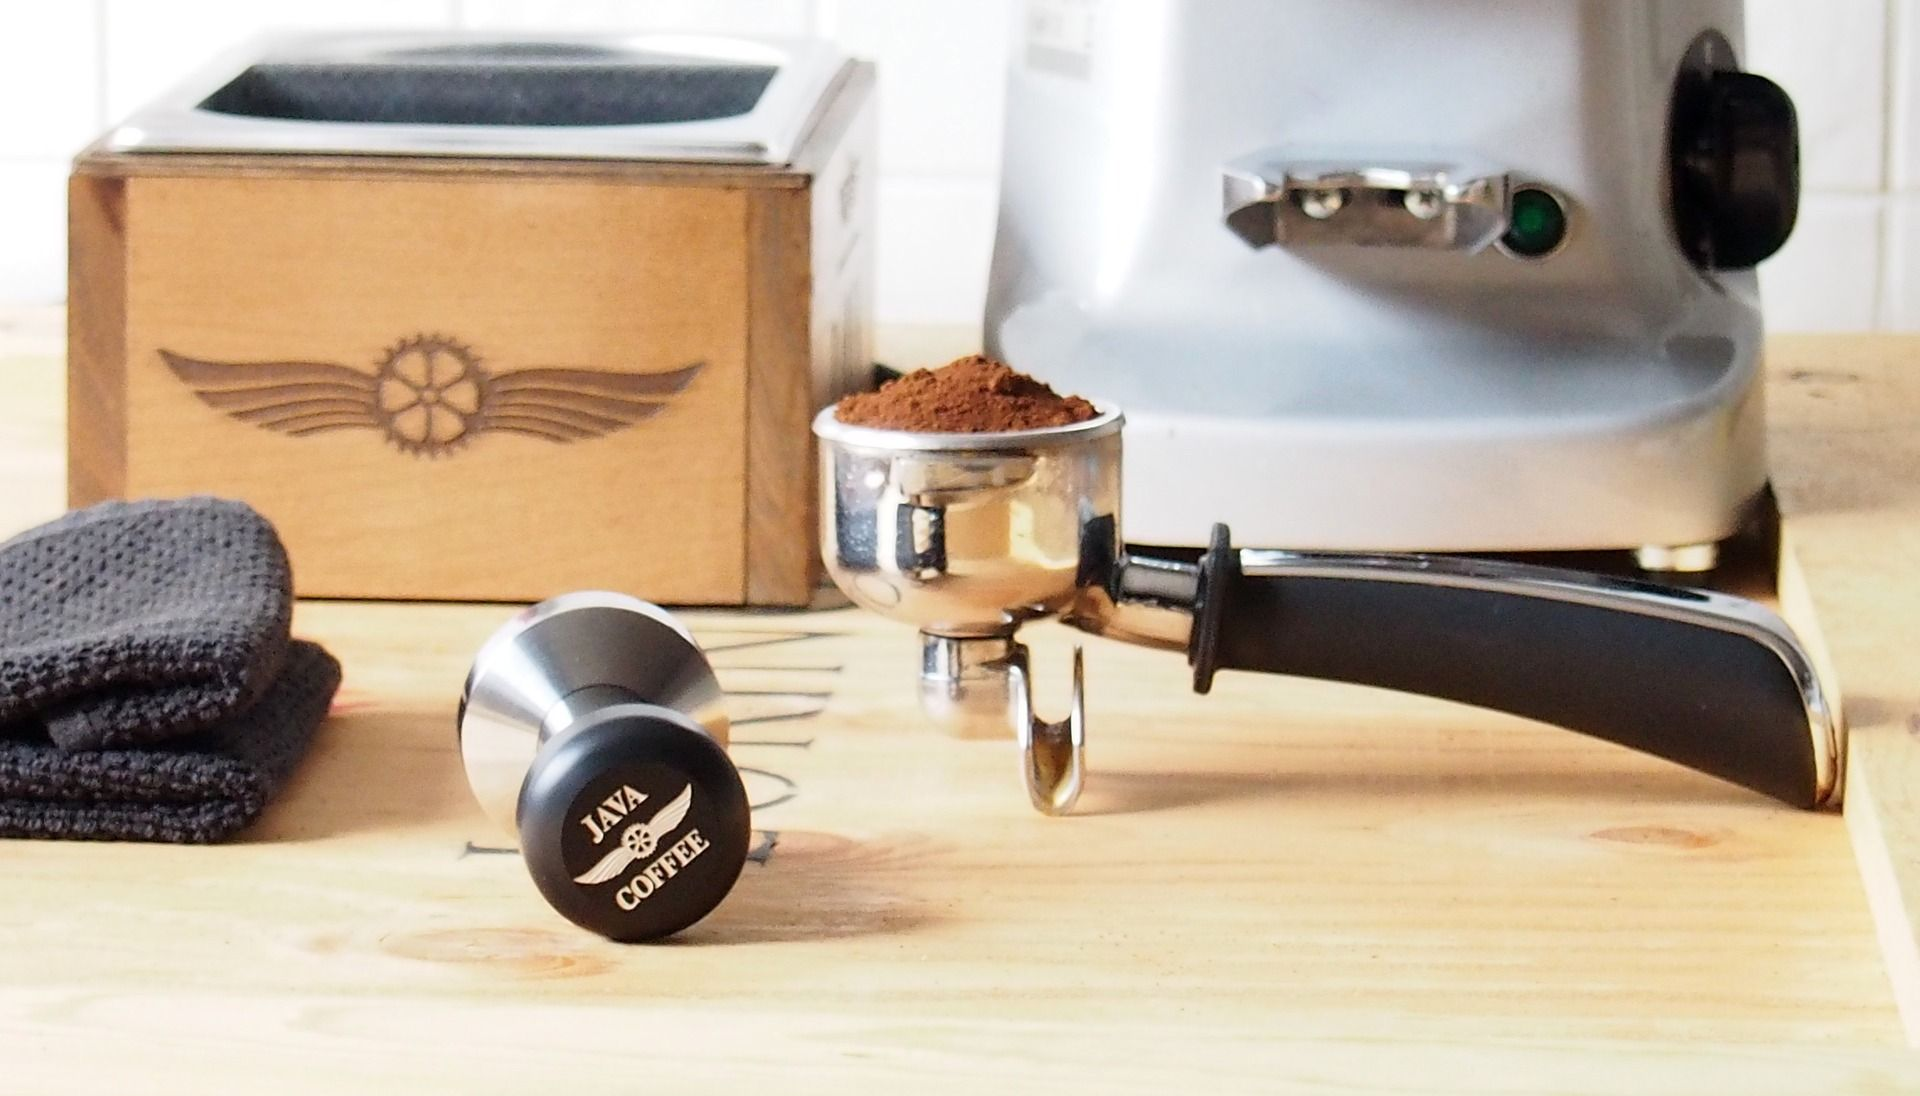 Pin by My Perfect Grind on Coffee grinders | Best coffee ...